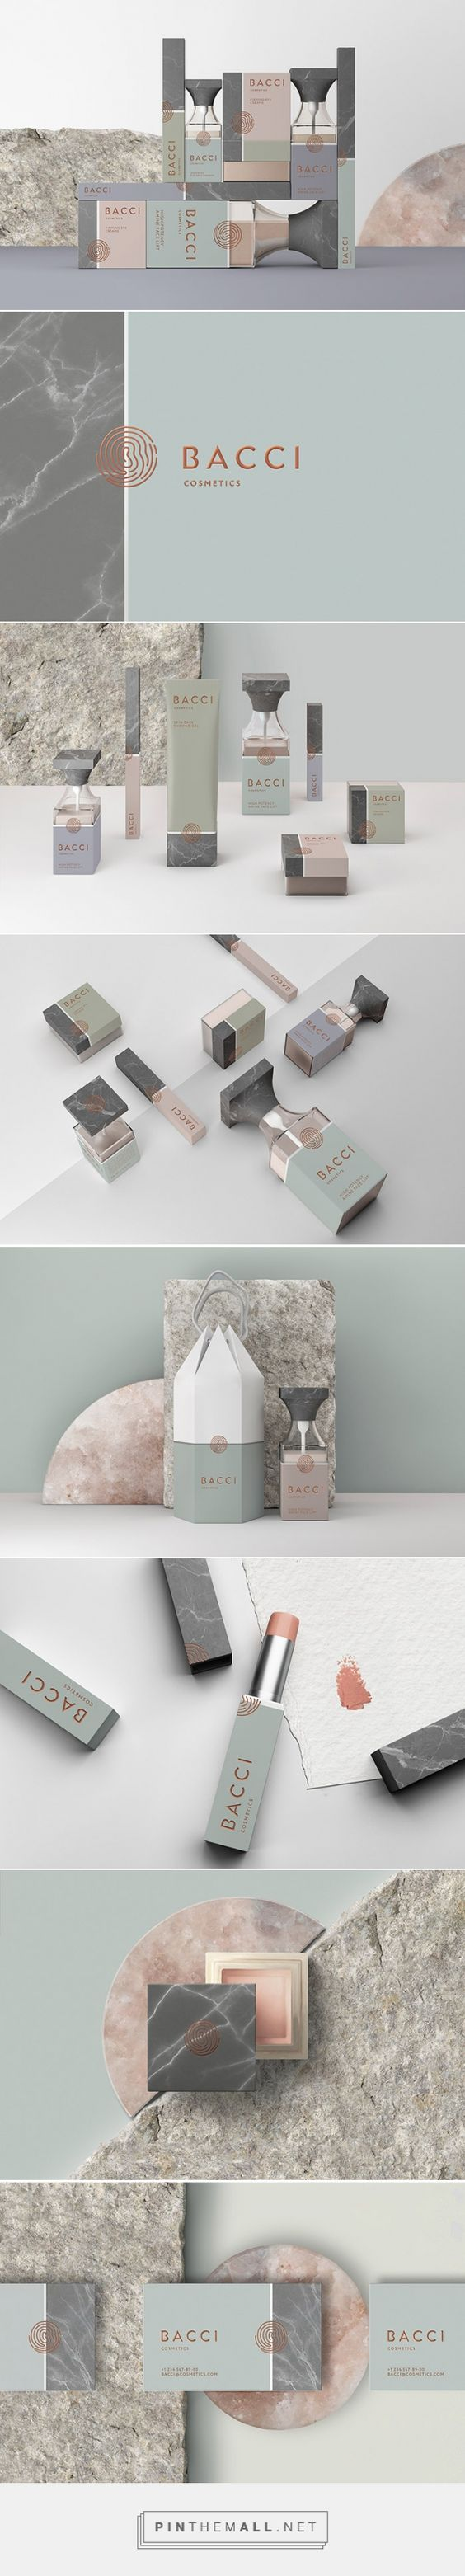 Bacci cosmetics by Noname Branding. Source: Daily Package Design Inspiration. Pin curated by #SFields99 #packaging #design #inspiration #branding #cosmetics